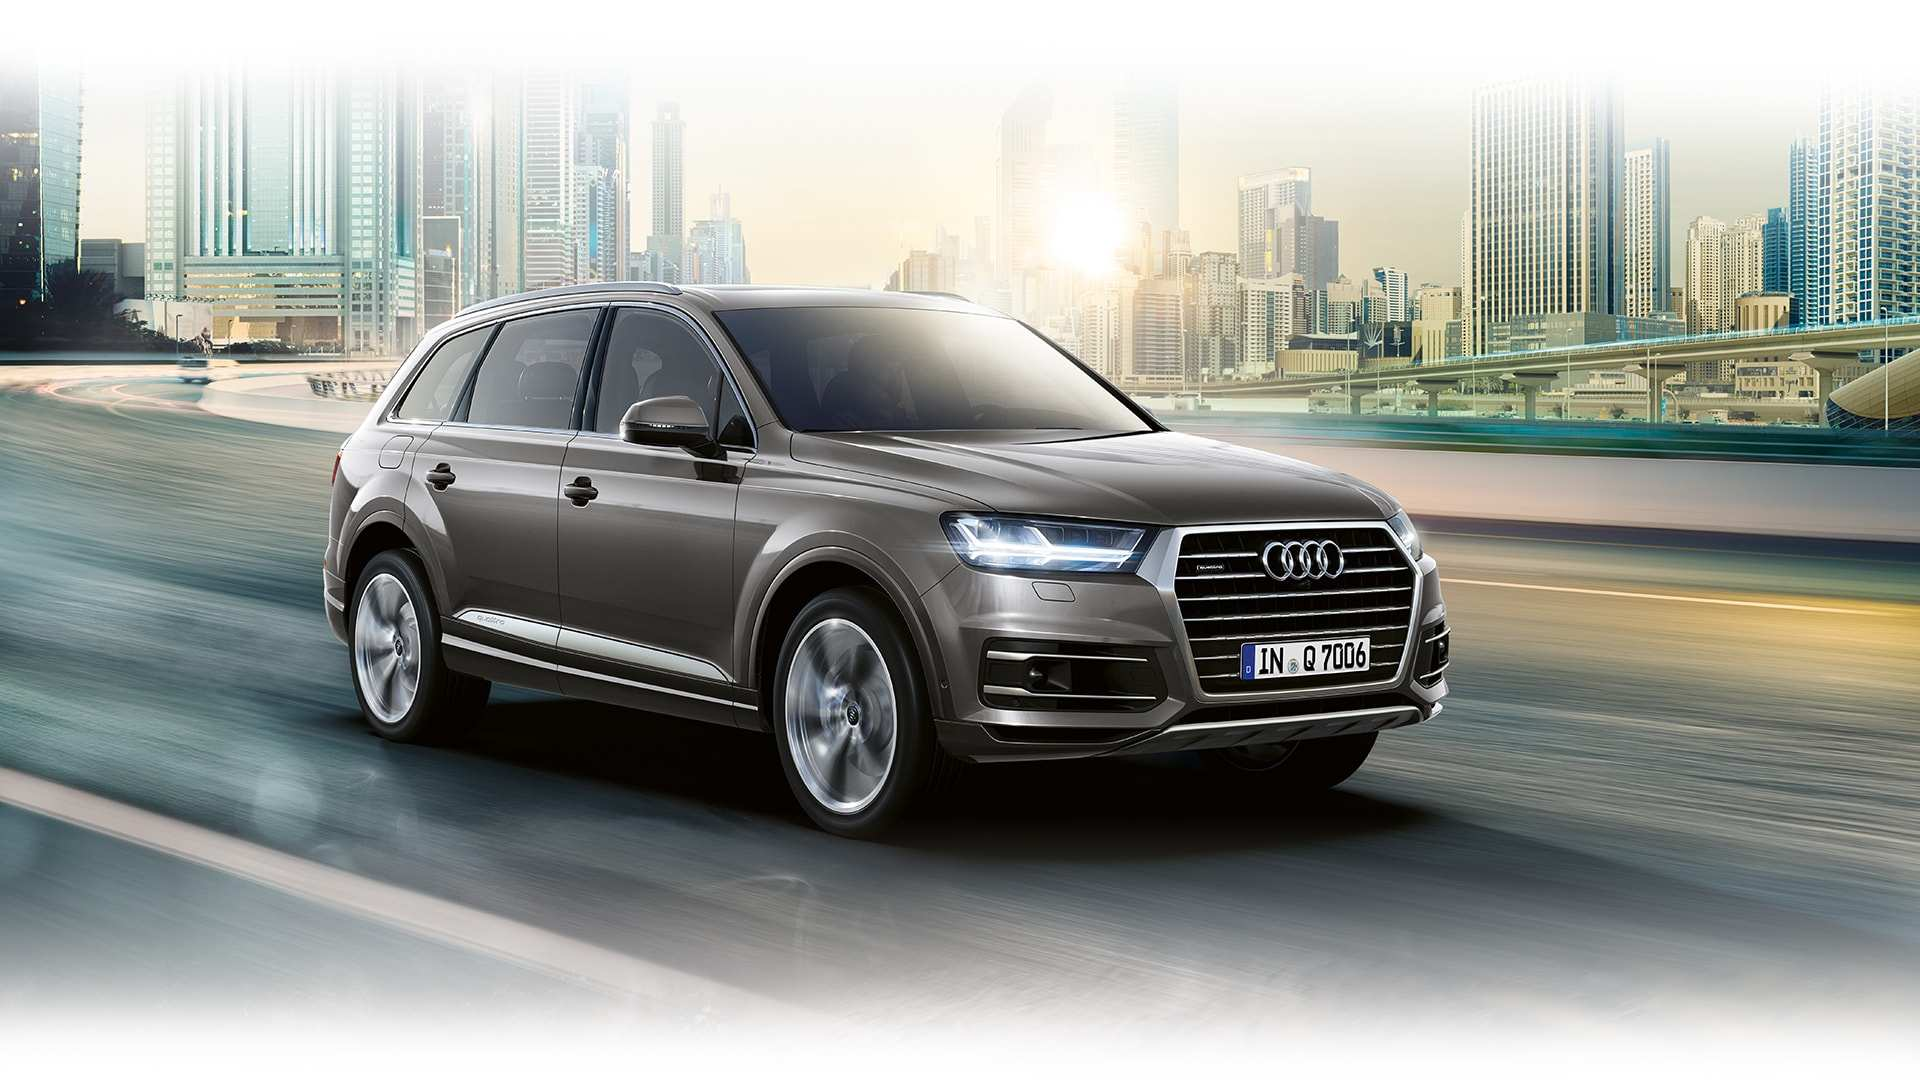 92 A Xe Audi Q7 2020 New Model And Performance